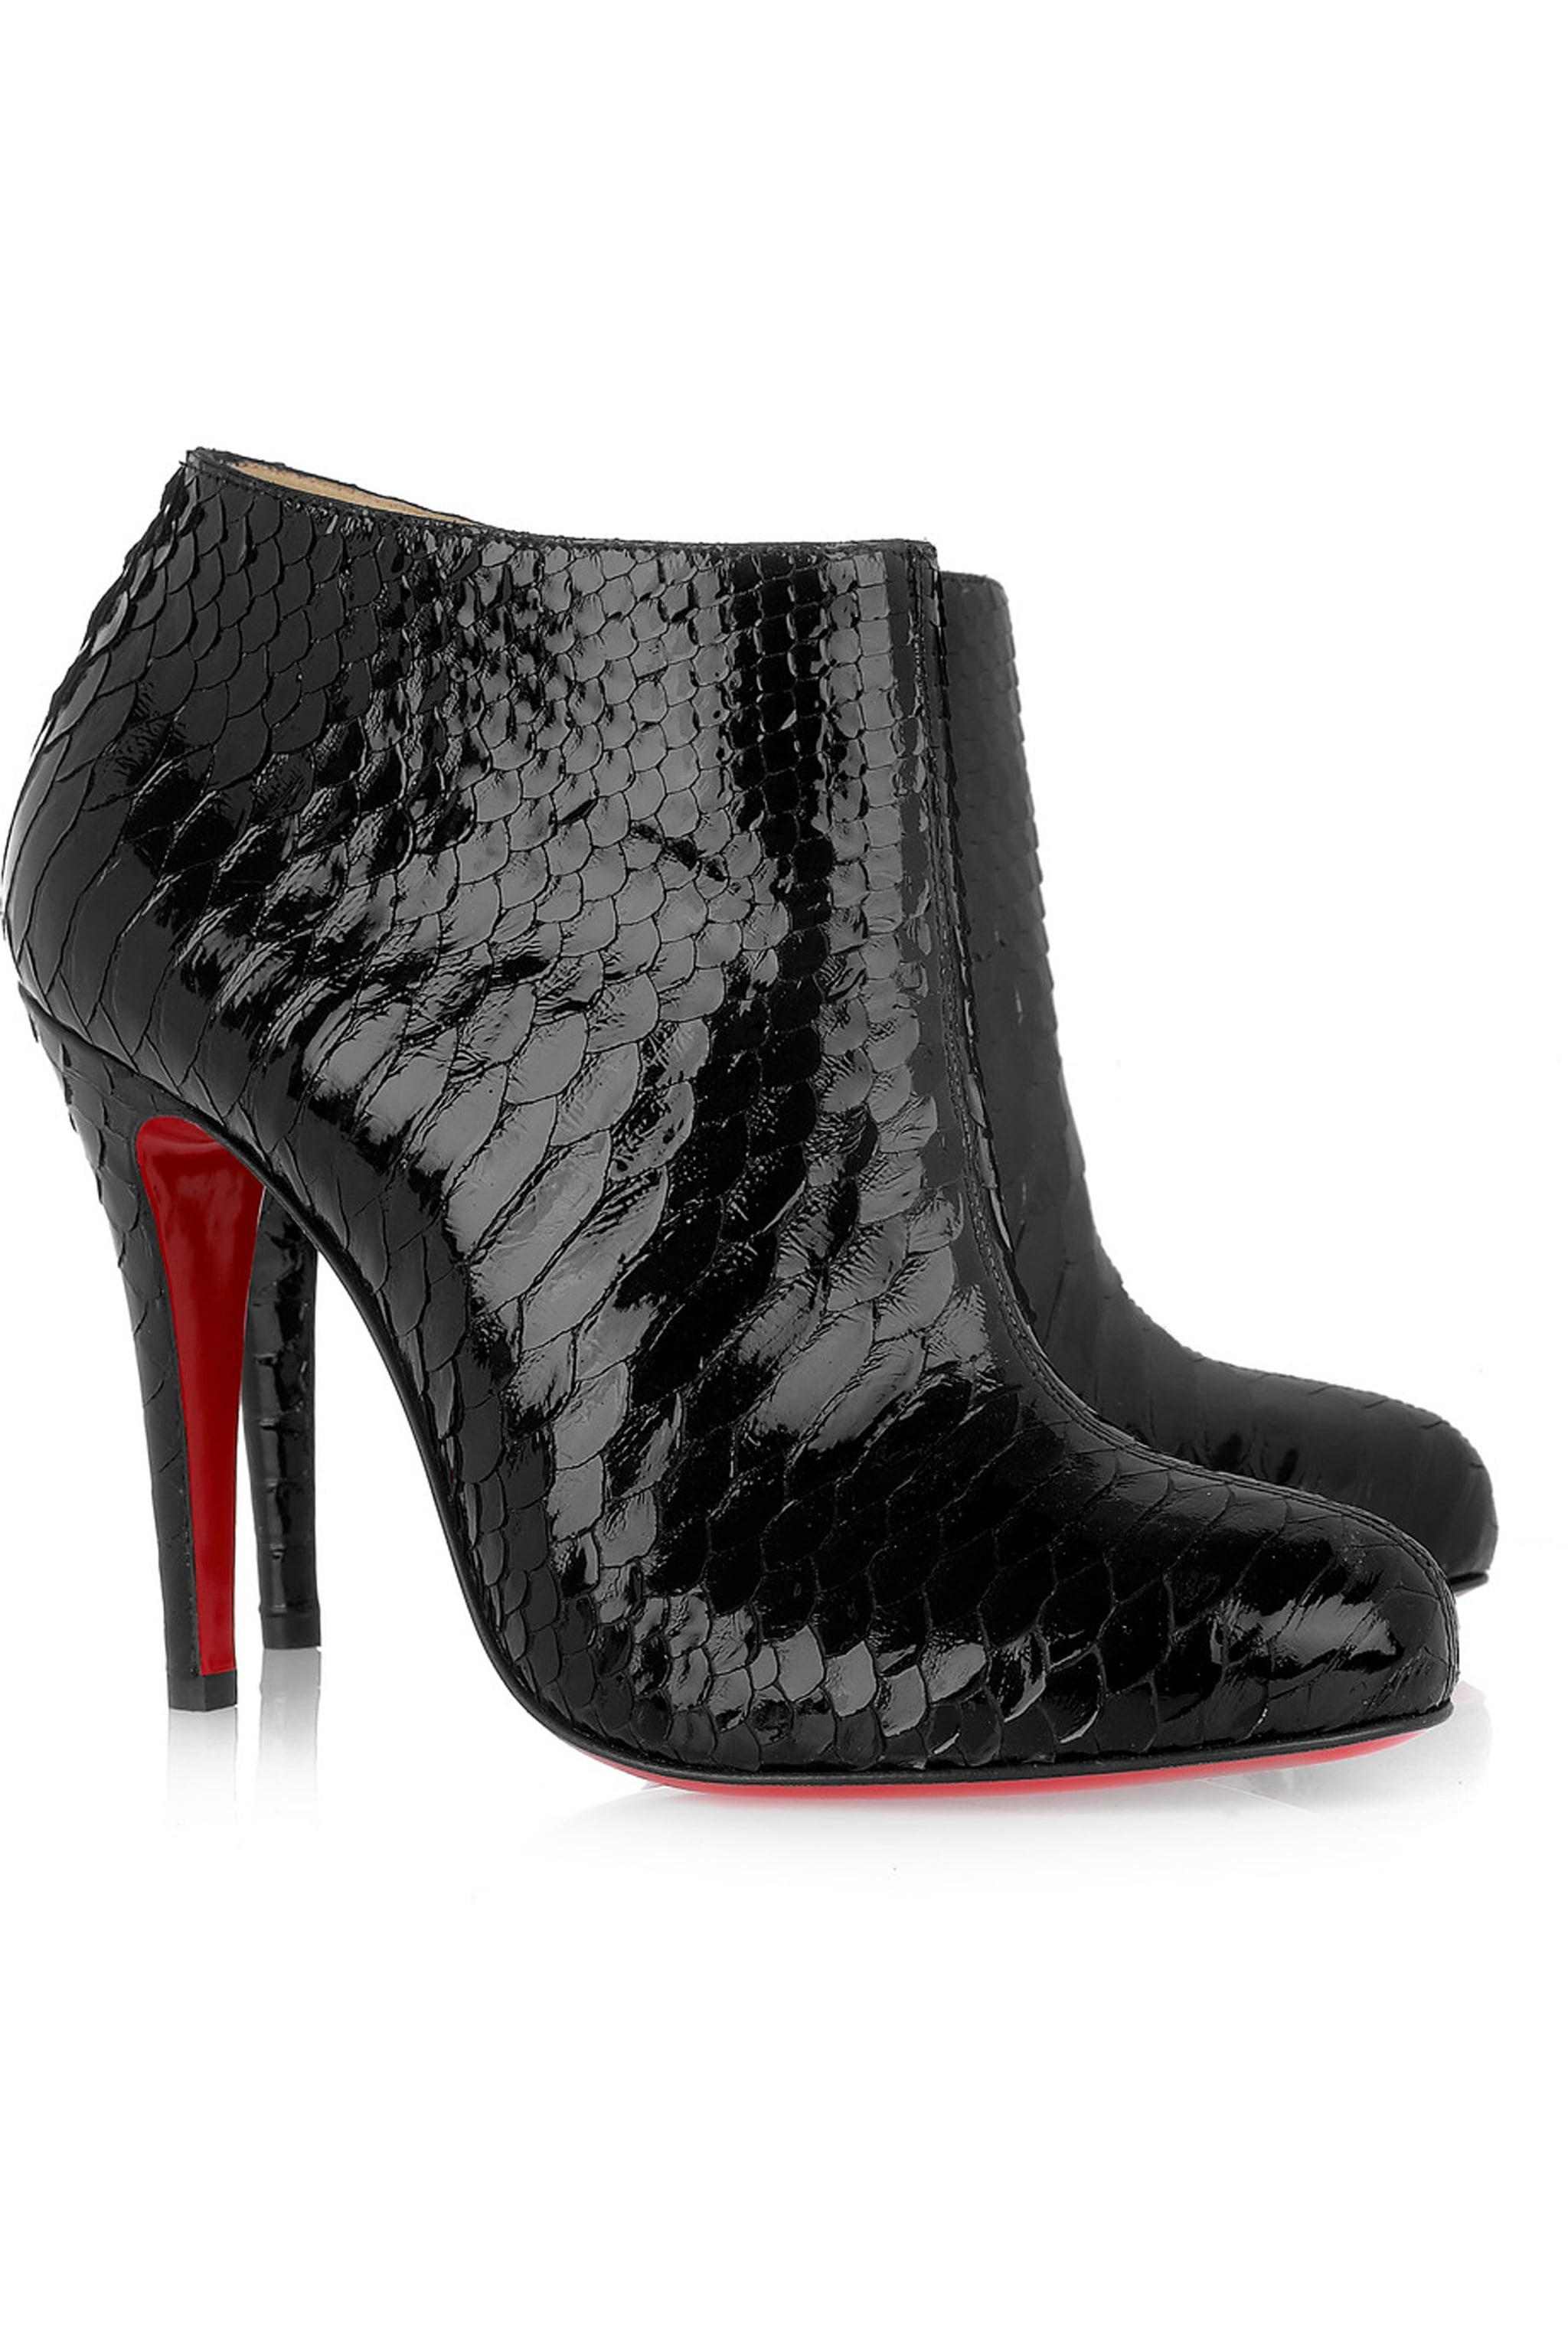 christian louboutin fake - Christian Louboutin Belle Python Ankle Boots ($797 on sale ...